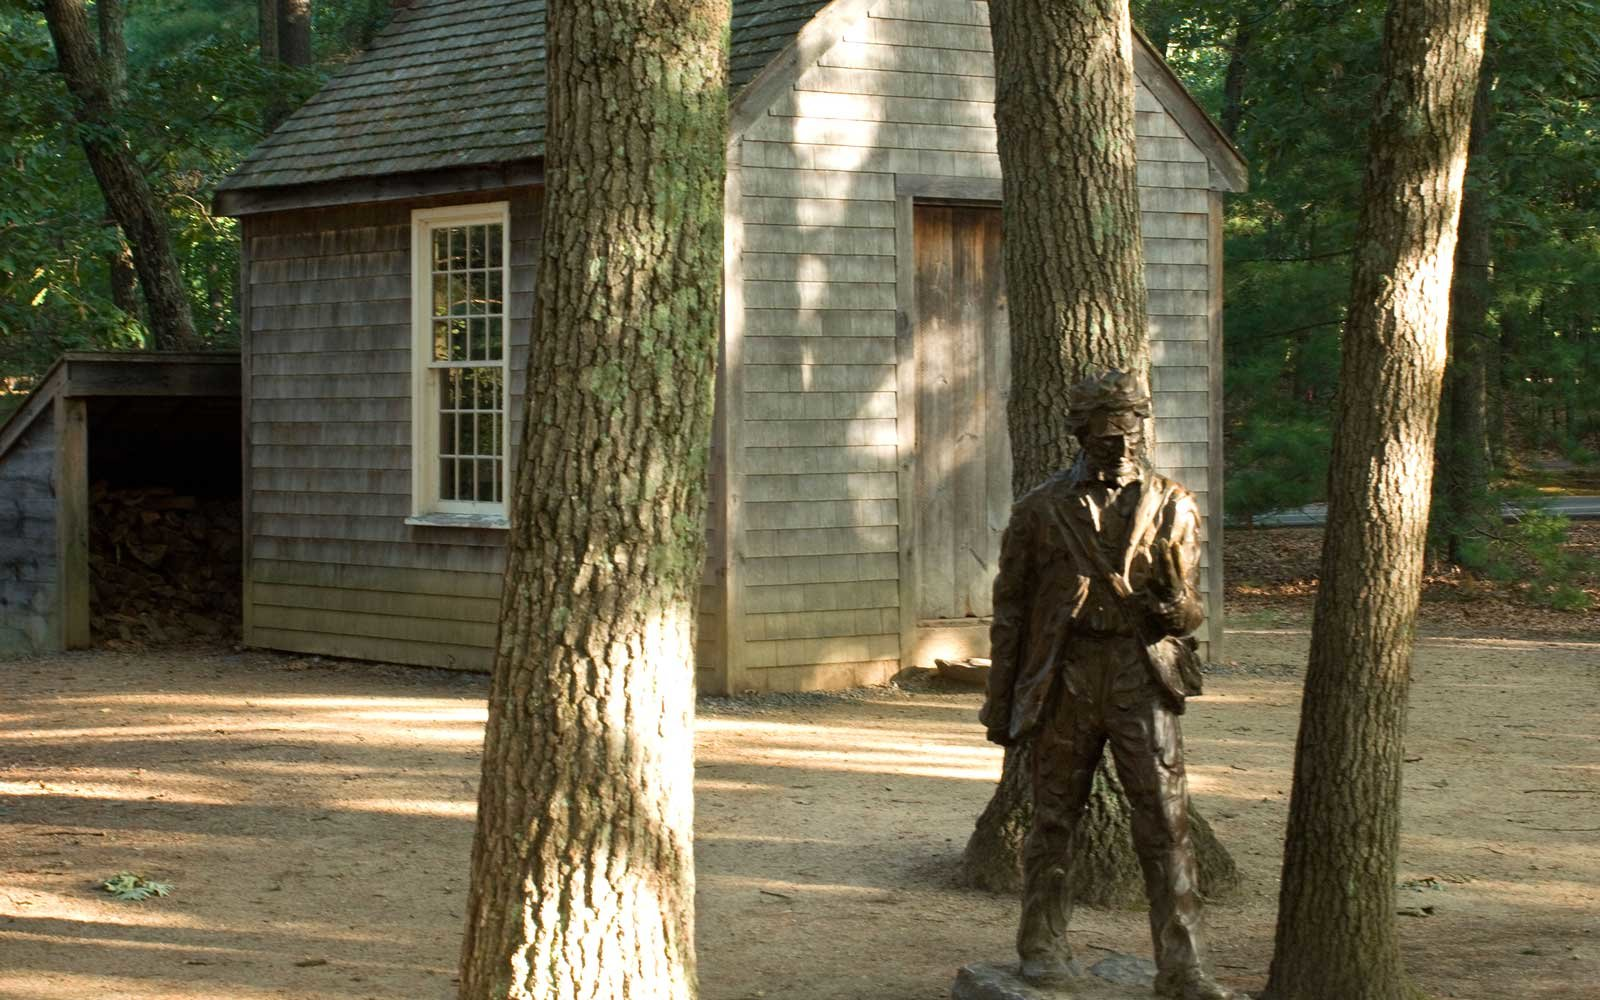 Henry David Thoreau's cabin and statute in Concord, MA